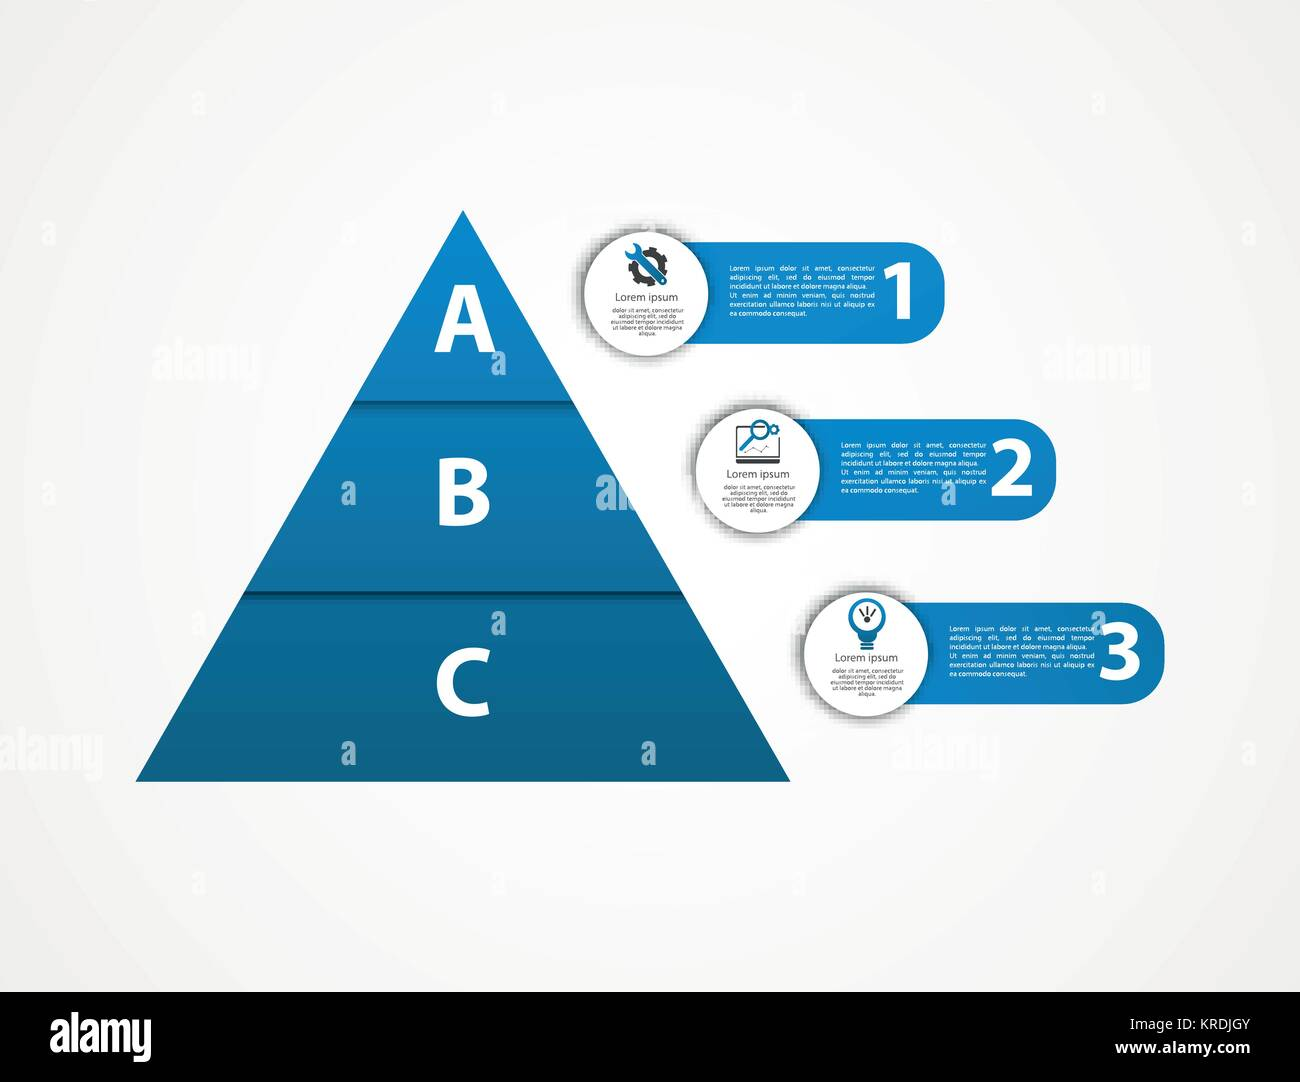 Business Pyramid Infographic Template Design Stock Photos Business